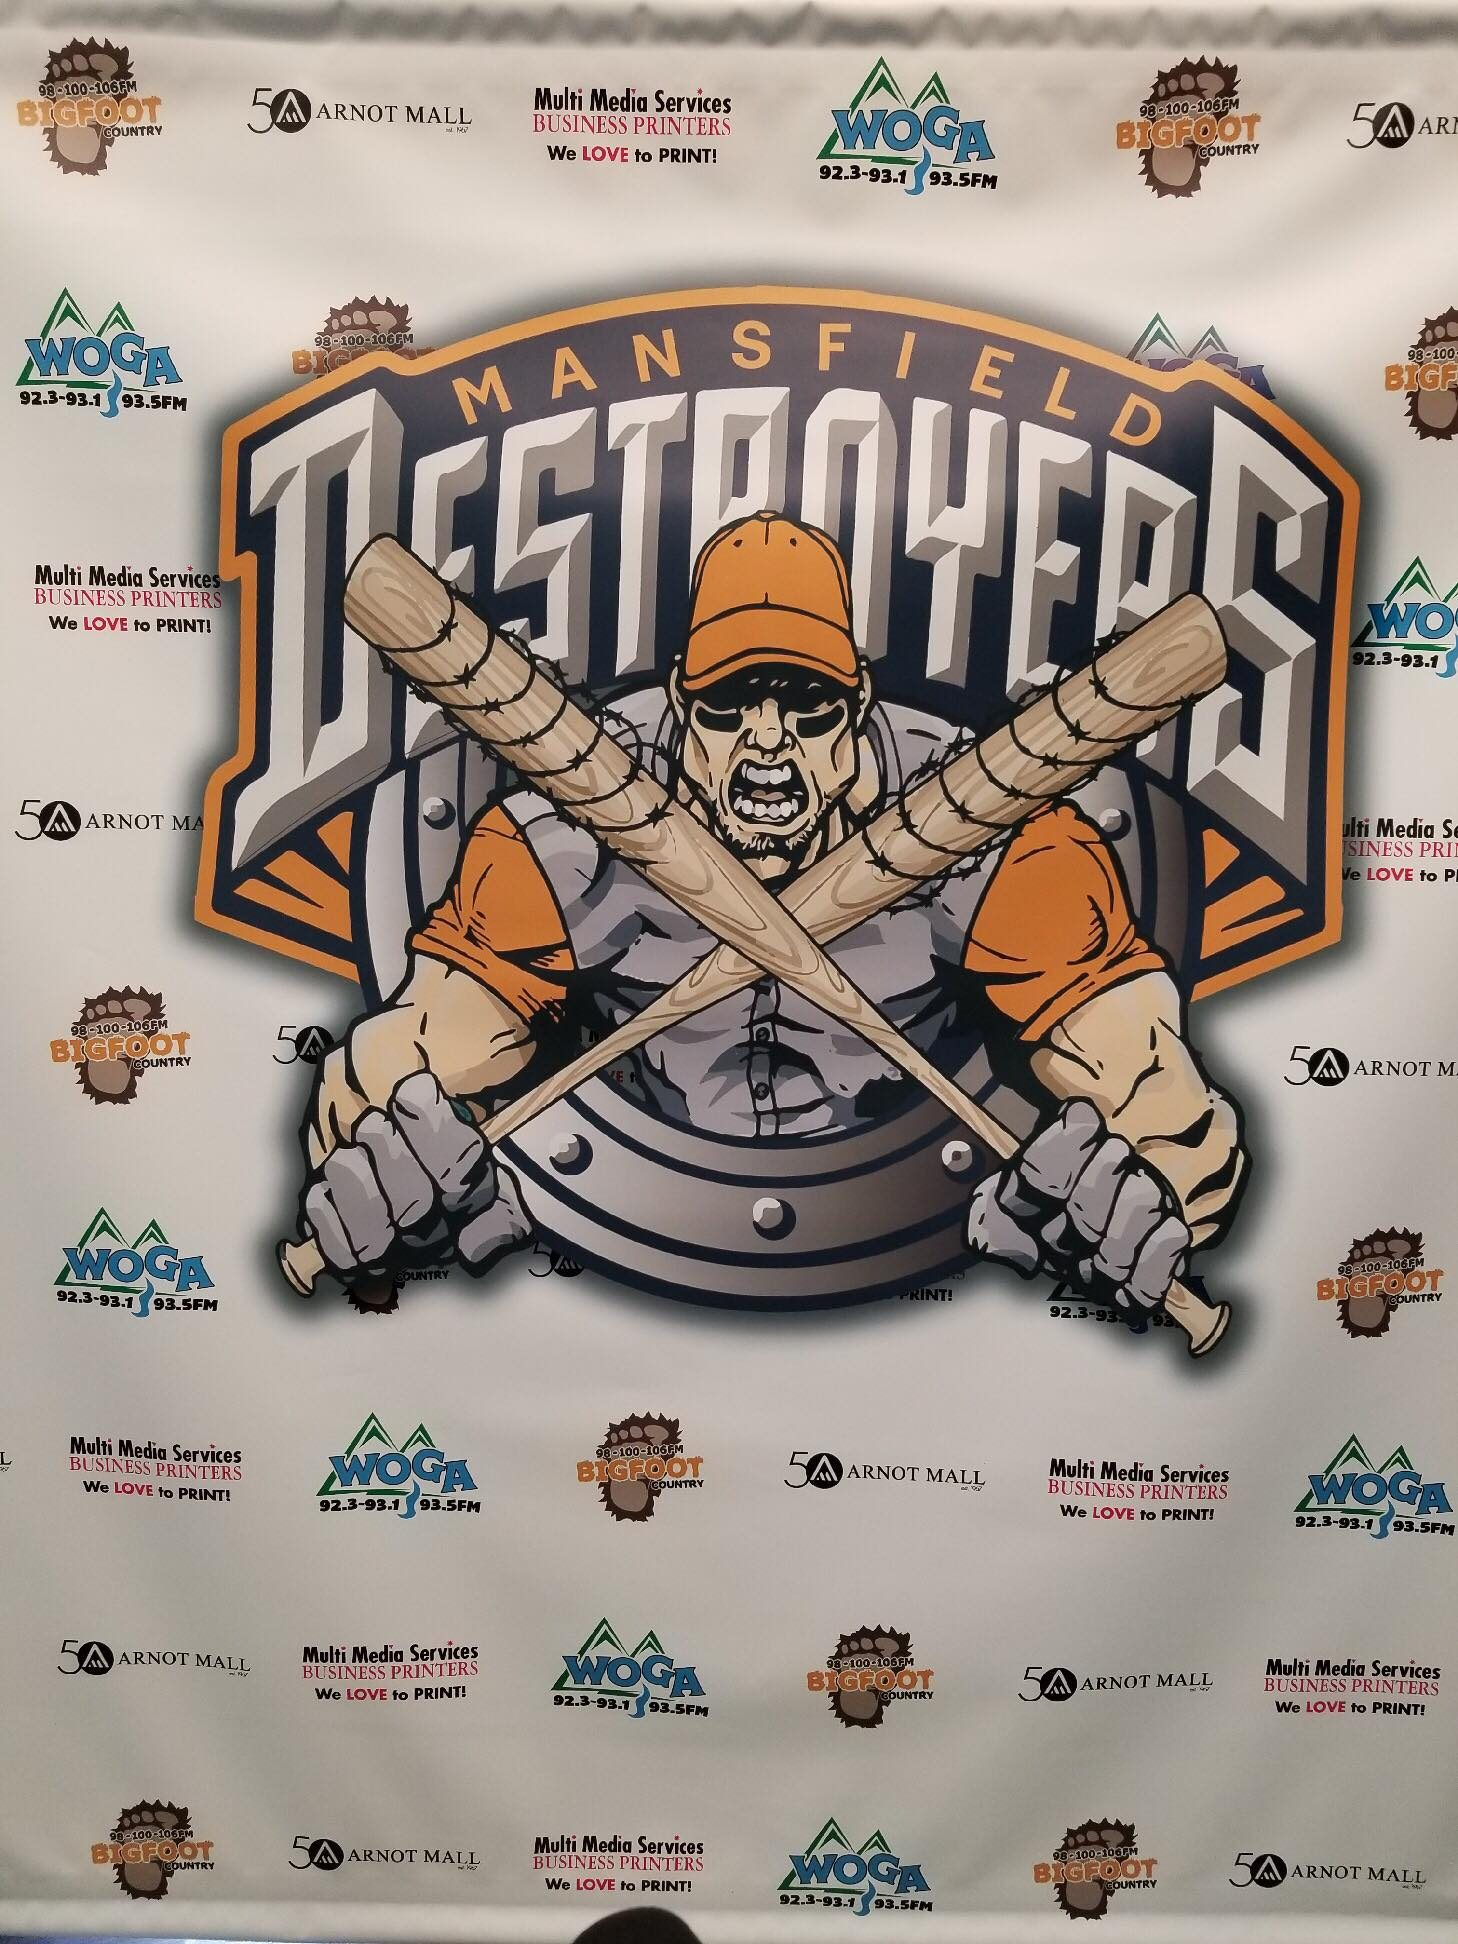 Announcing the Mansfield Destroyers Baseball Team!!